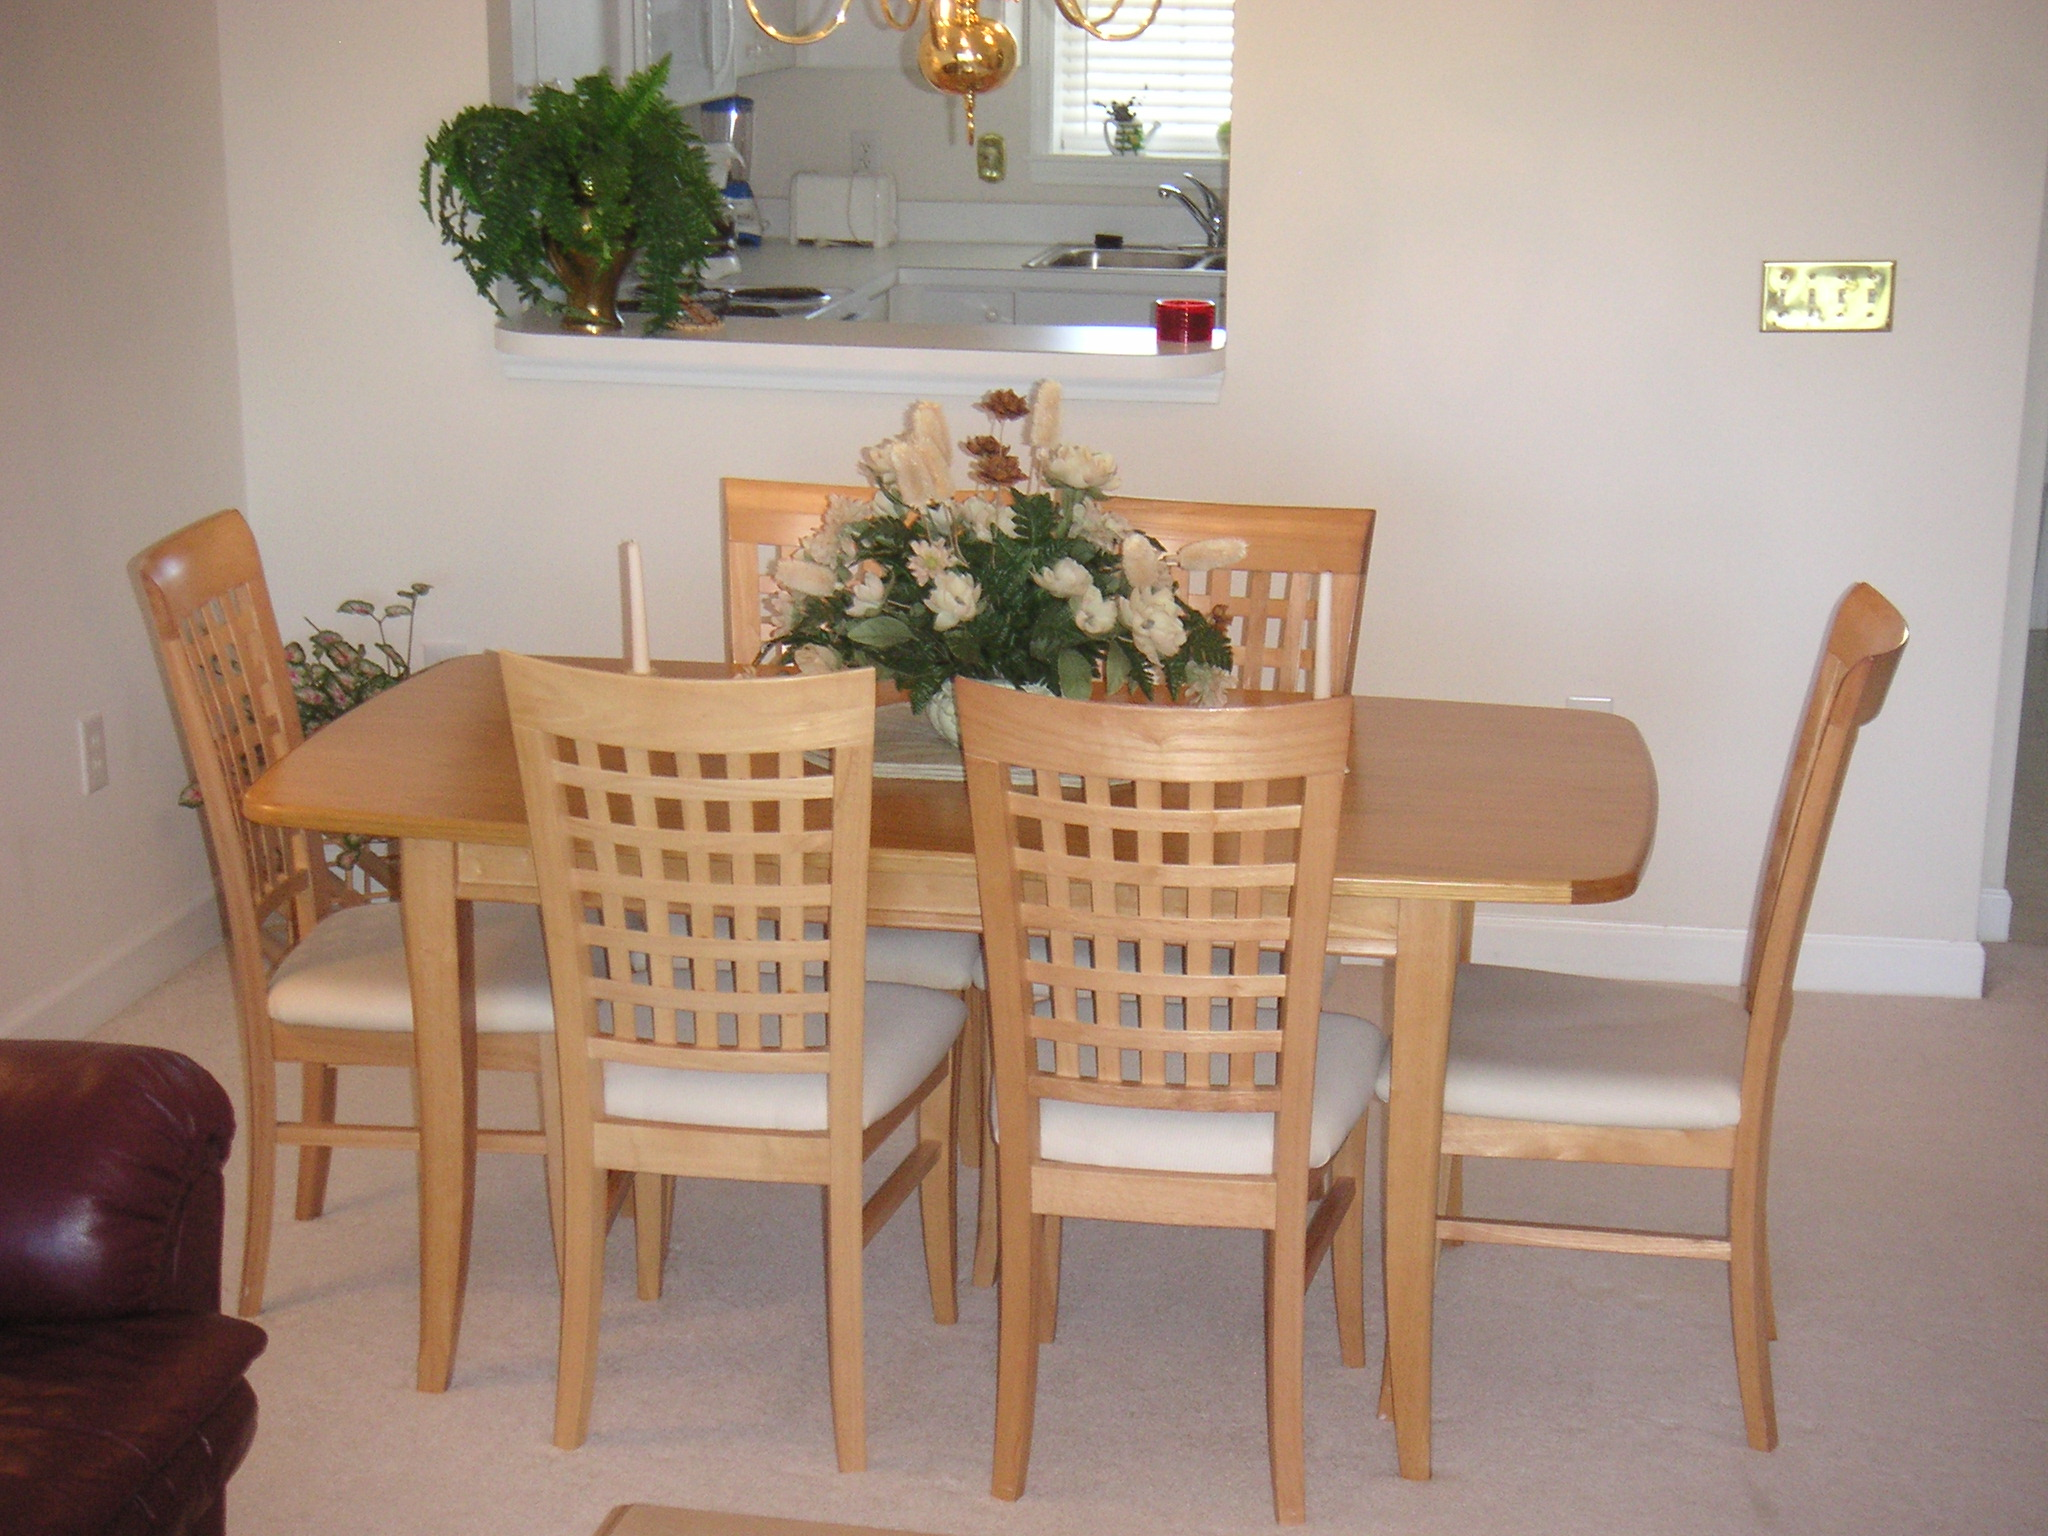 Bright and Airy Dining Area Seats 6